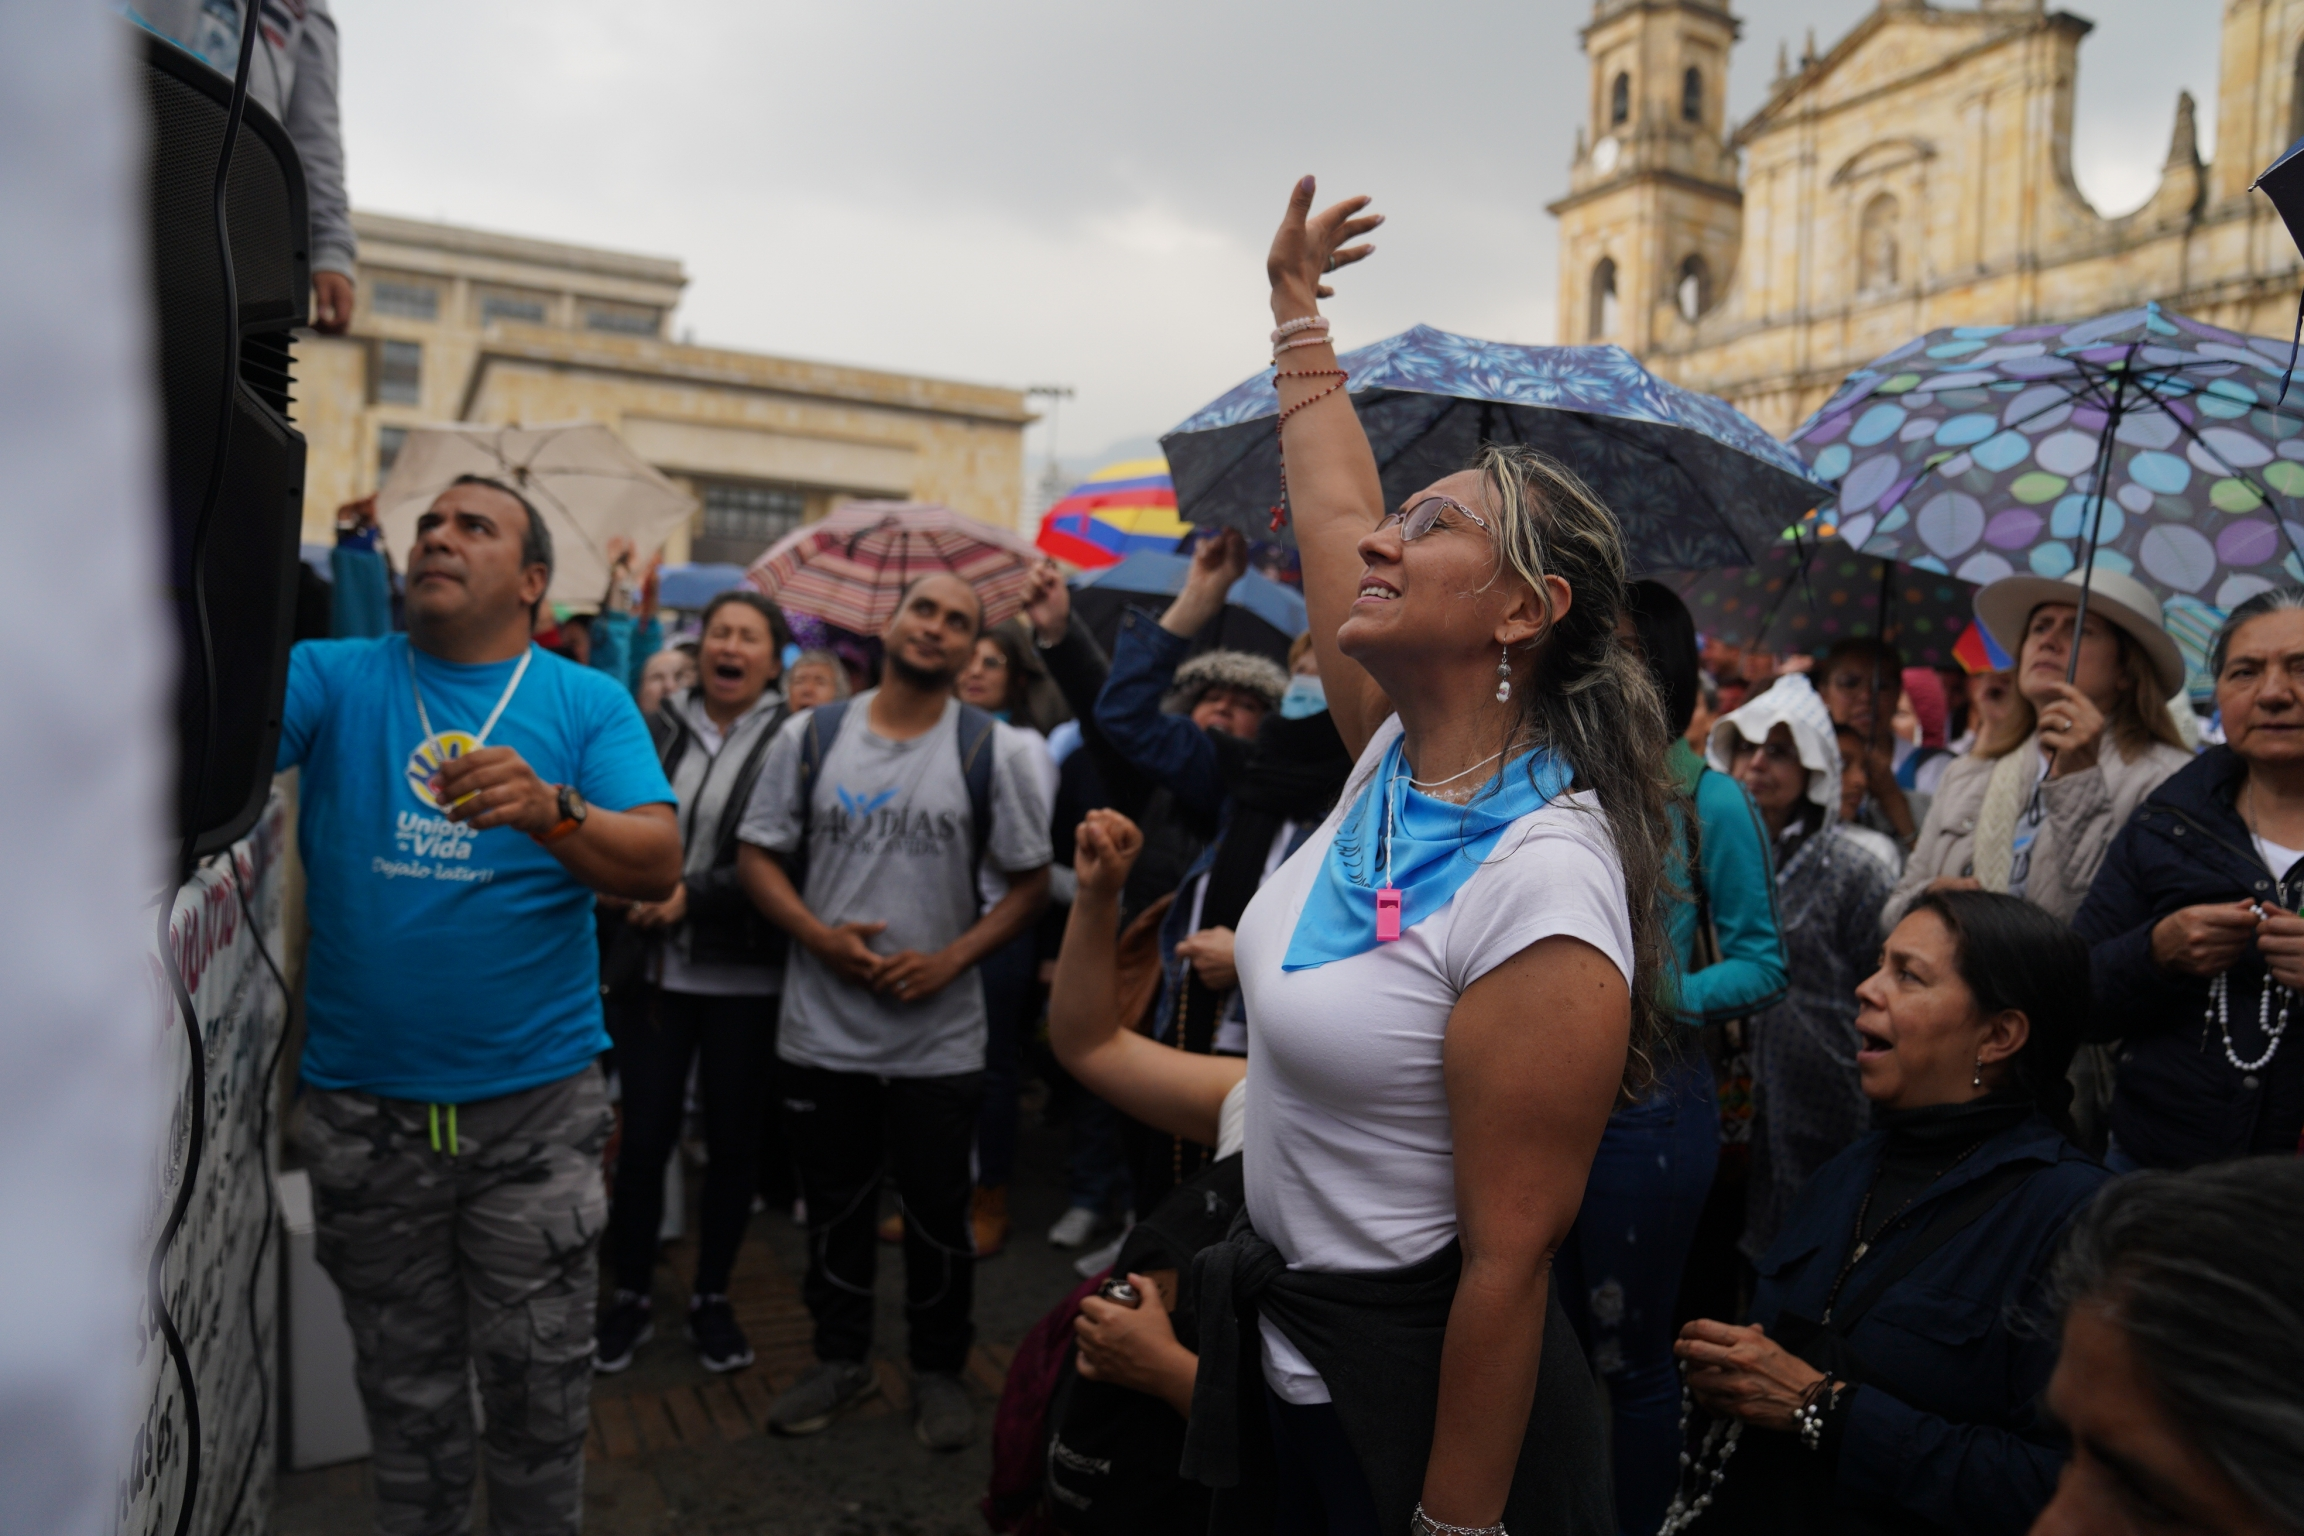 A demonstrator prays during a protest against efforts to liberalize abortion outside a cathedral in Bogotá, Colombia, Feb. 22, 2020.